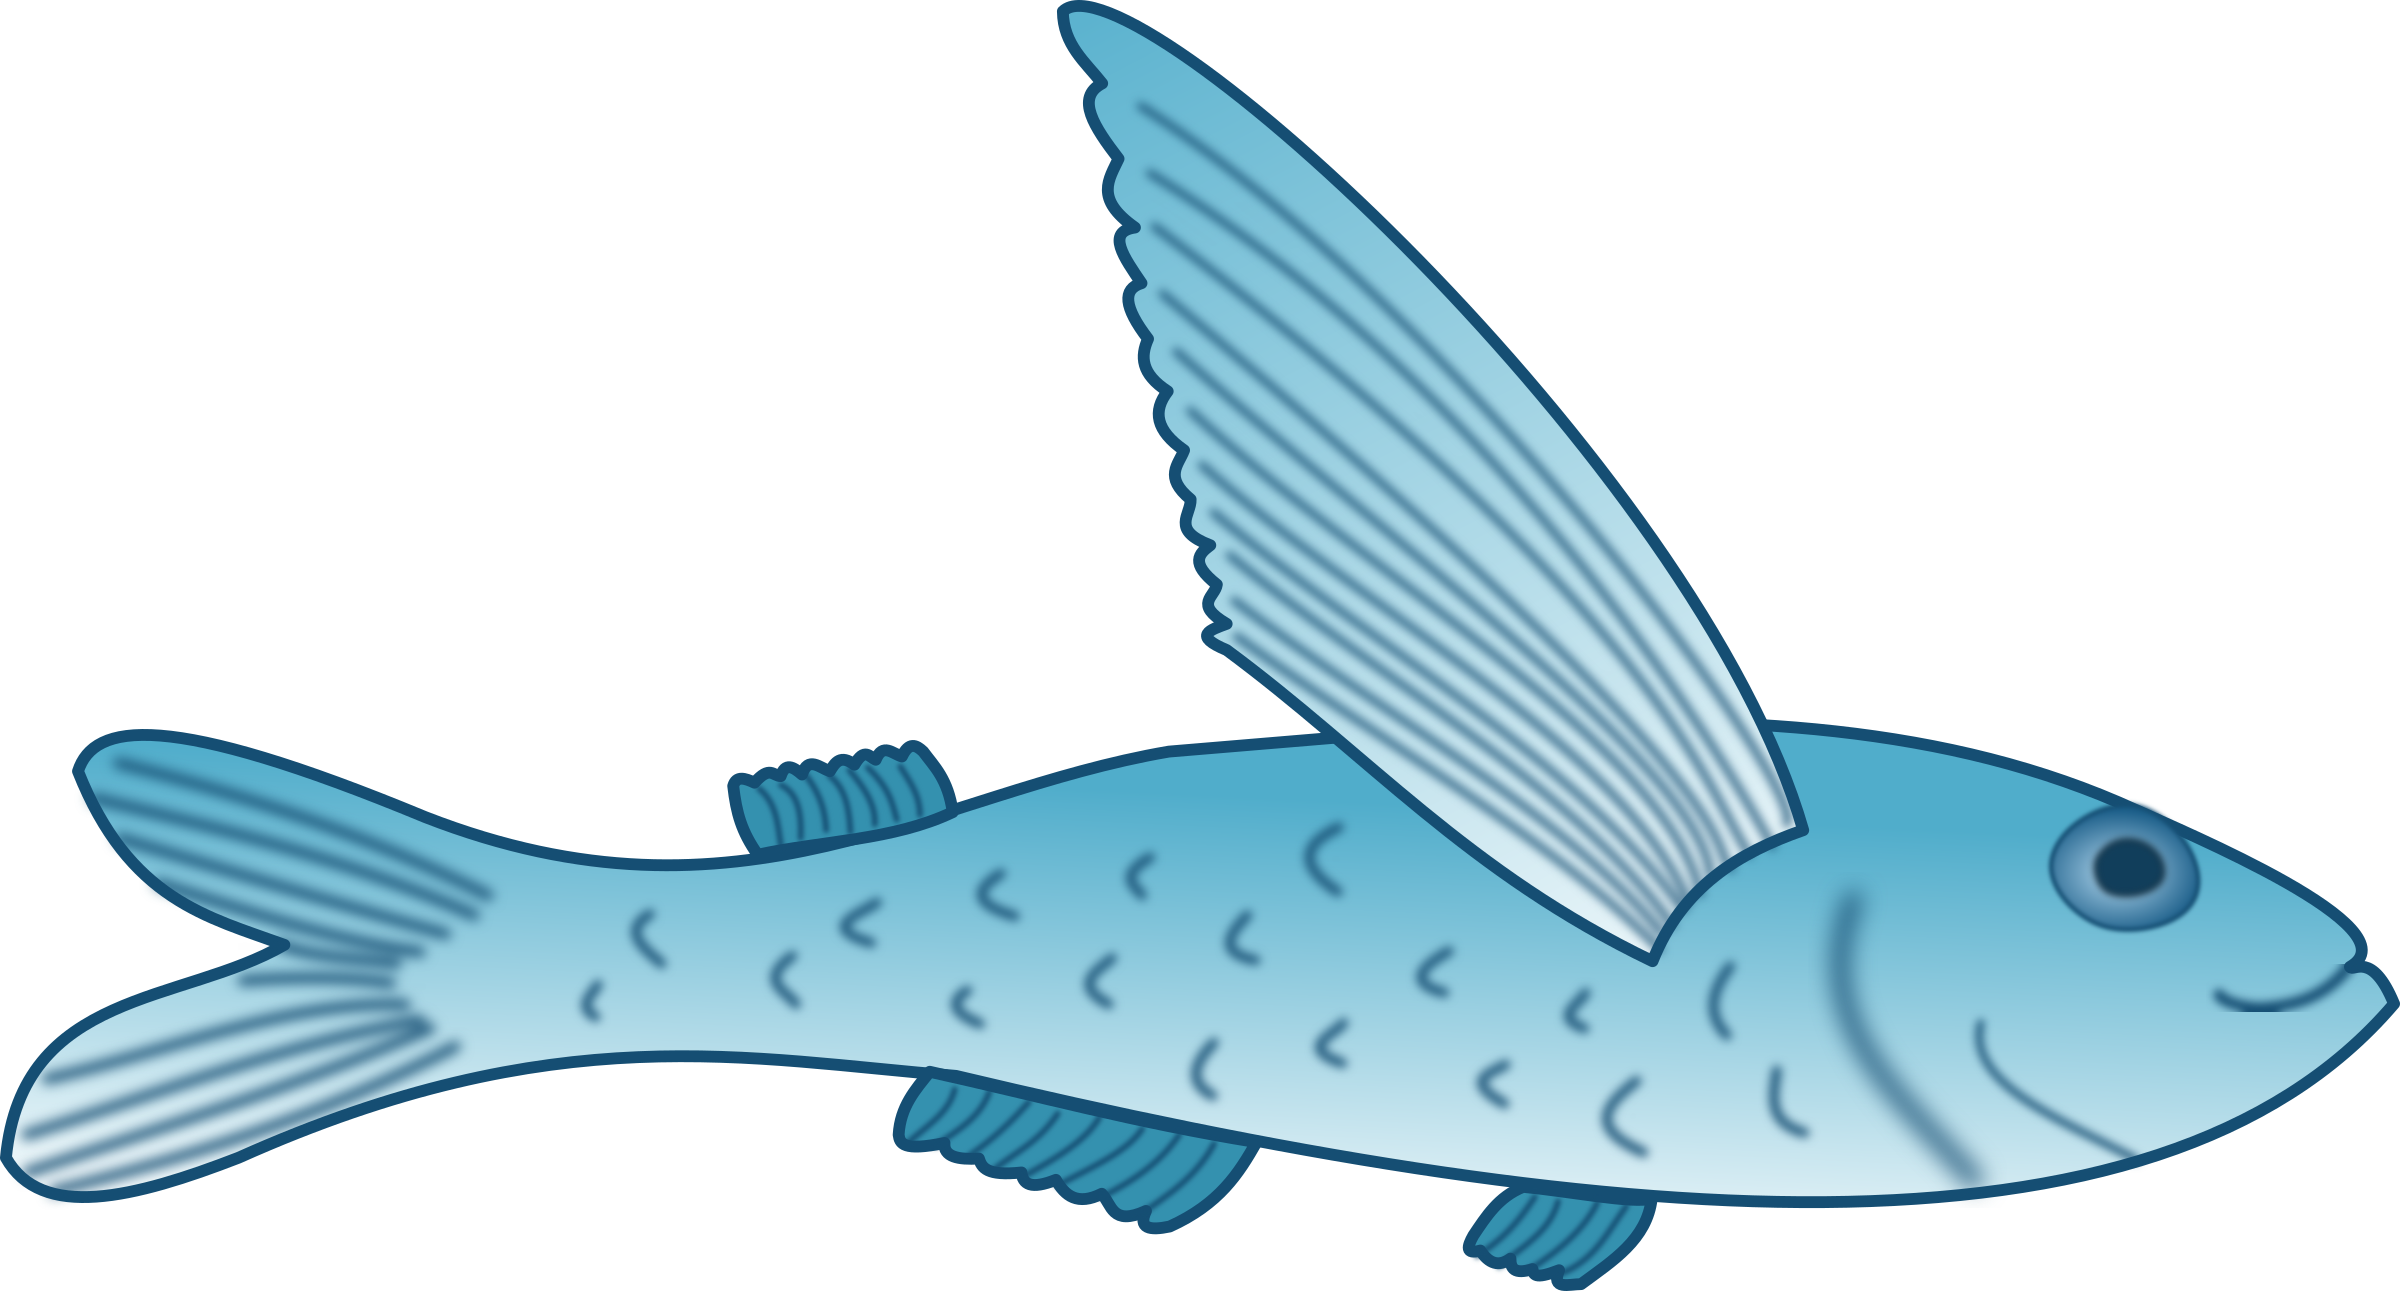 Fish jumping out of water clipart image free stock Important Clip Art Fish Clipart Flying #32141 image free stock